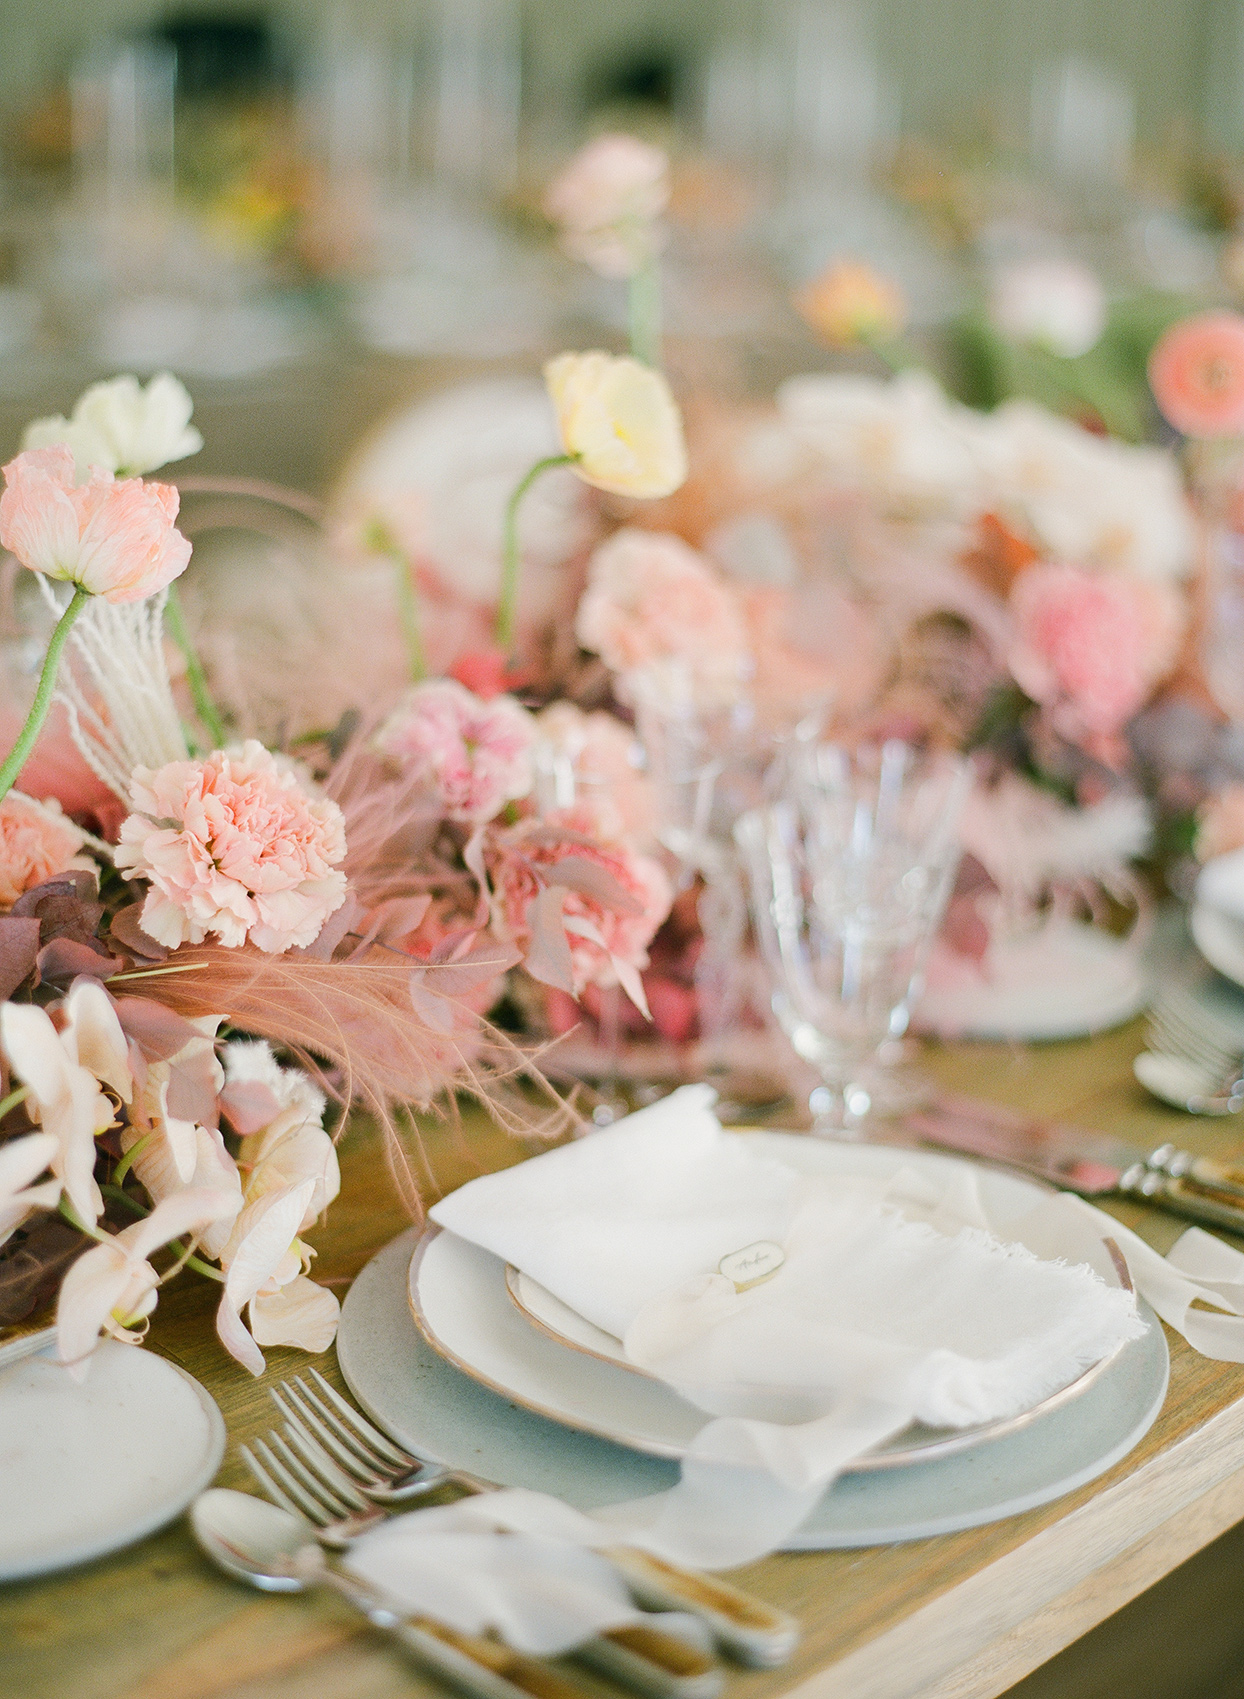 elegant wooden table reception place setting with floral and feather centerpieces